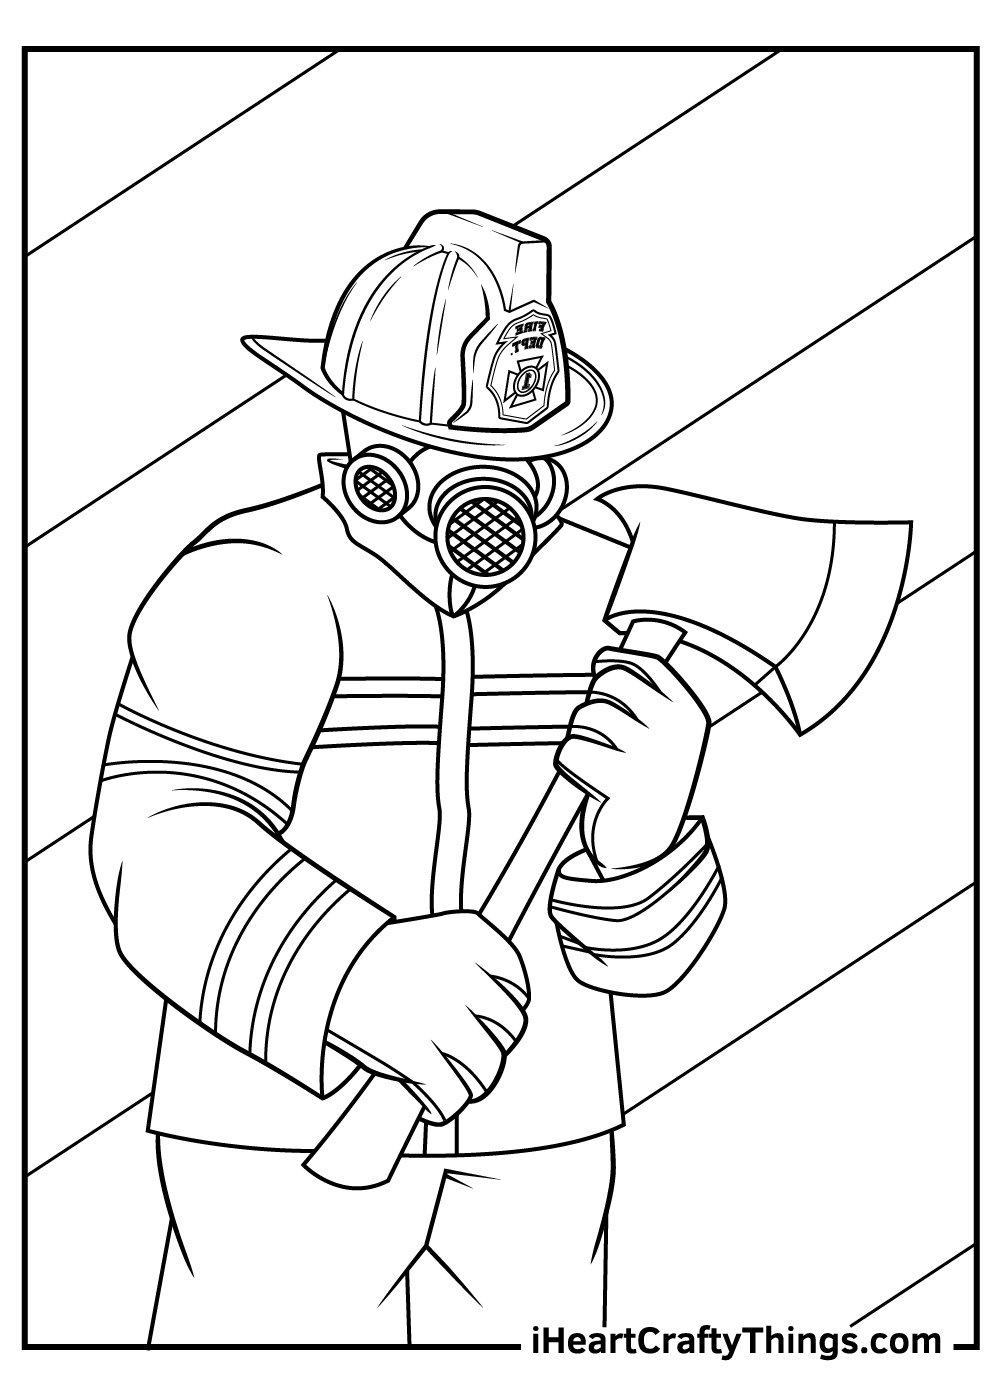 a fireman coloring pages free download